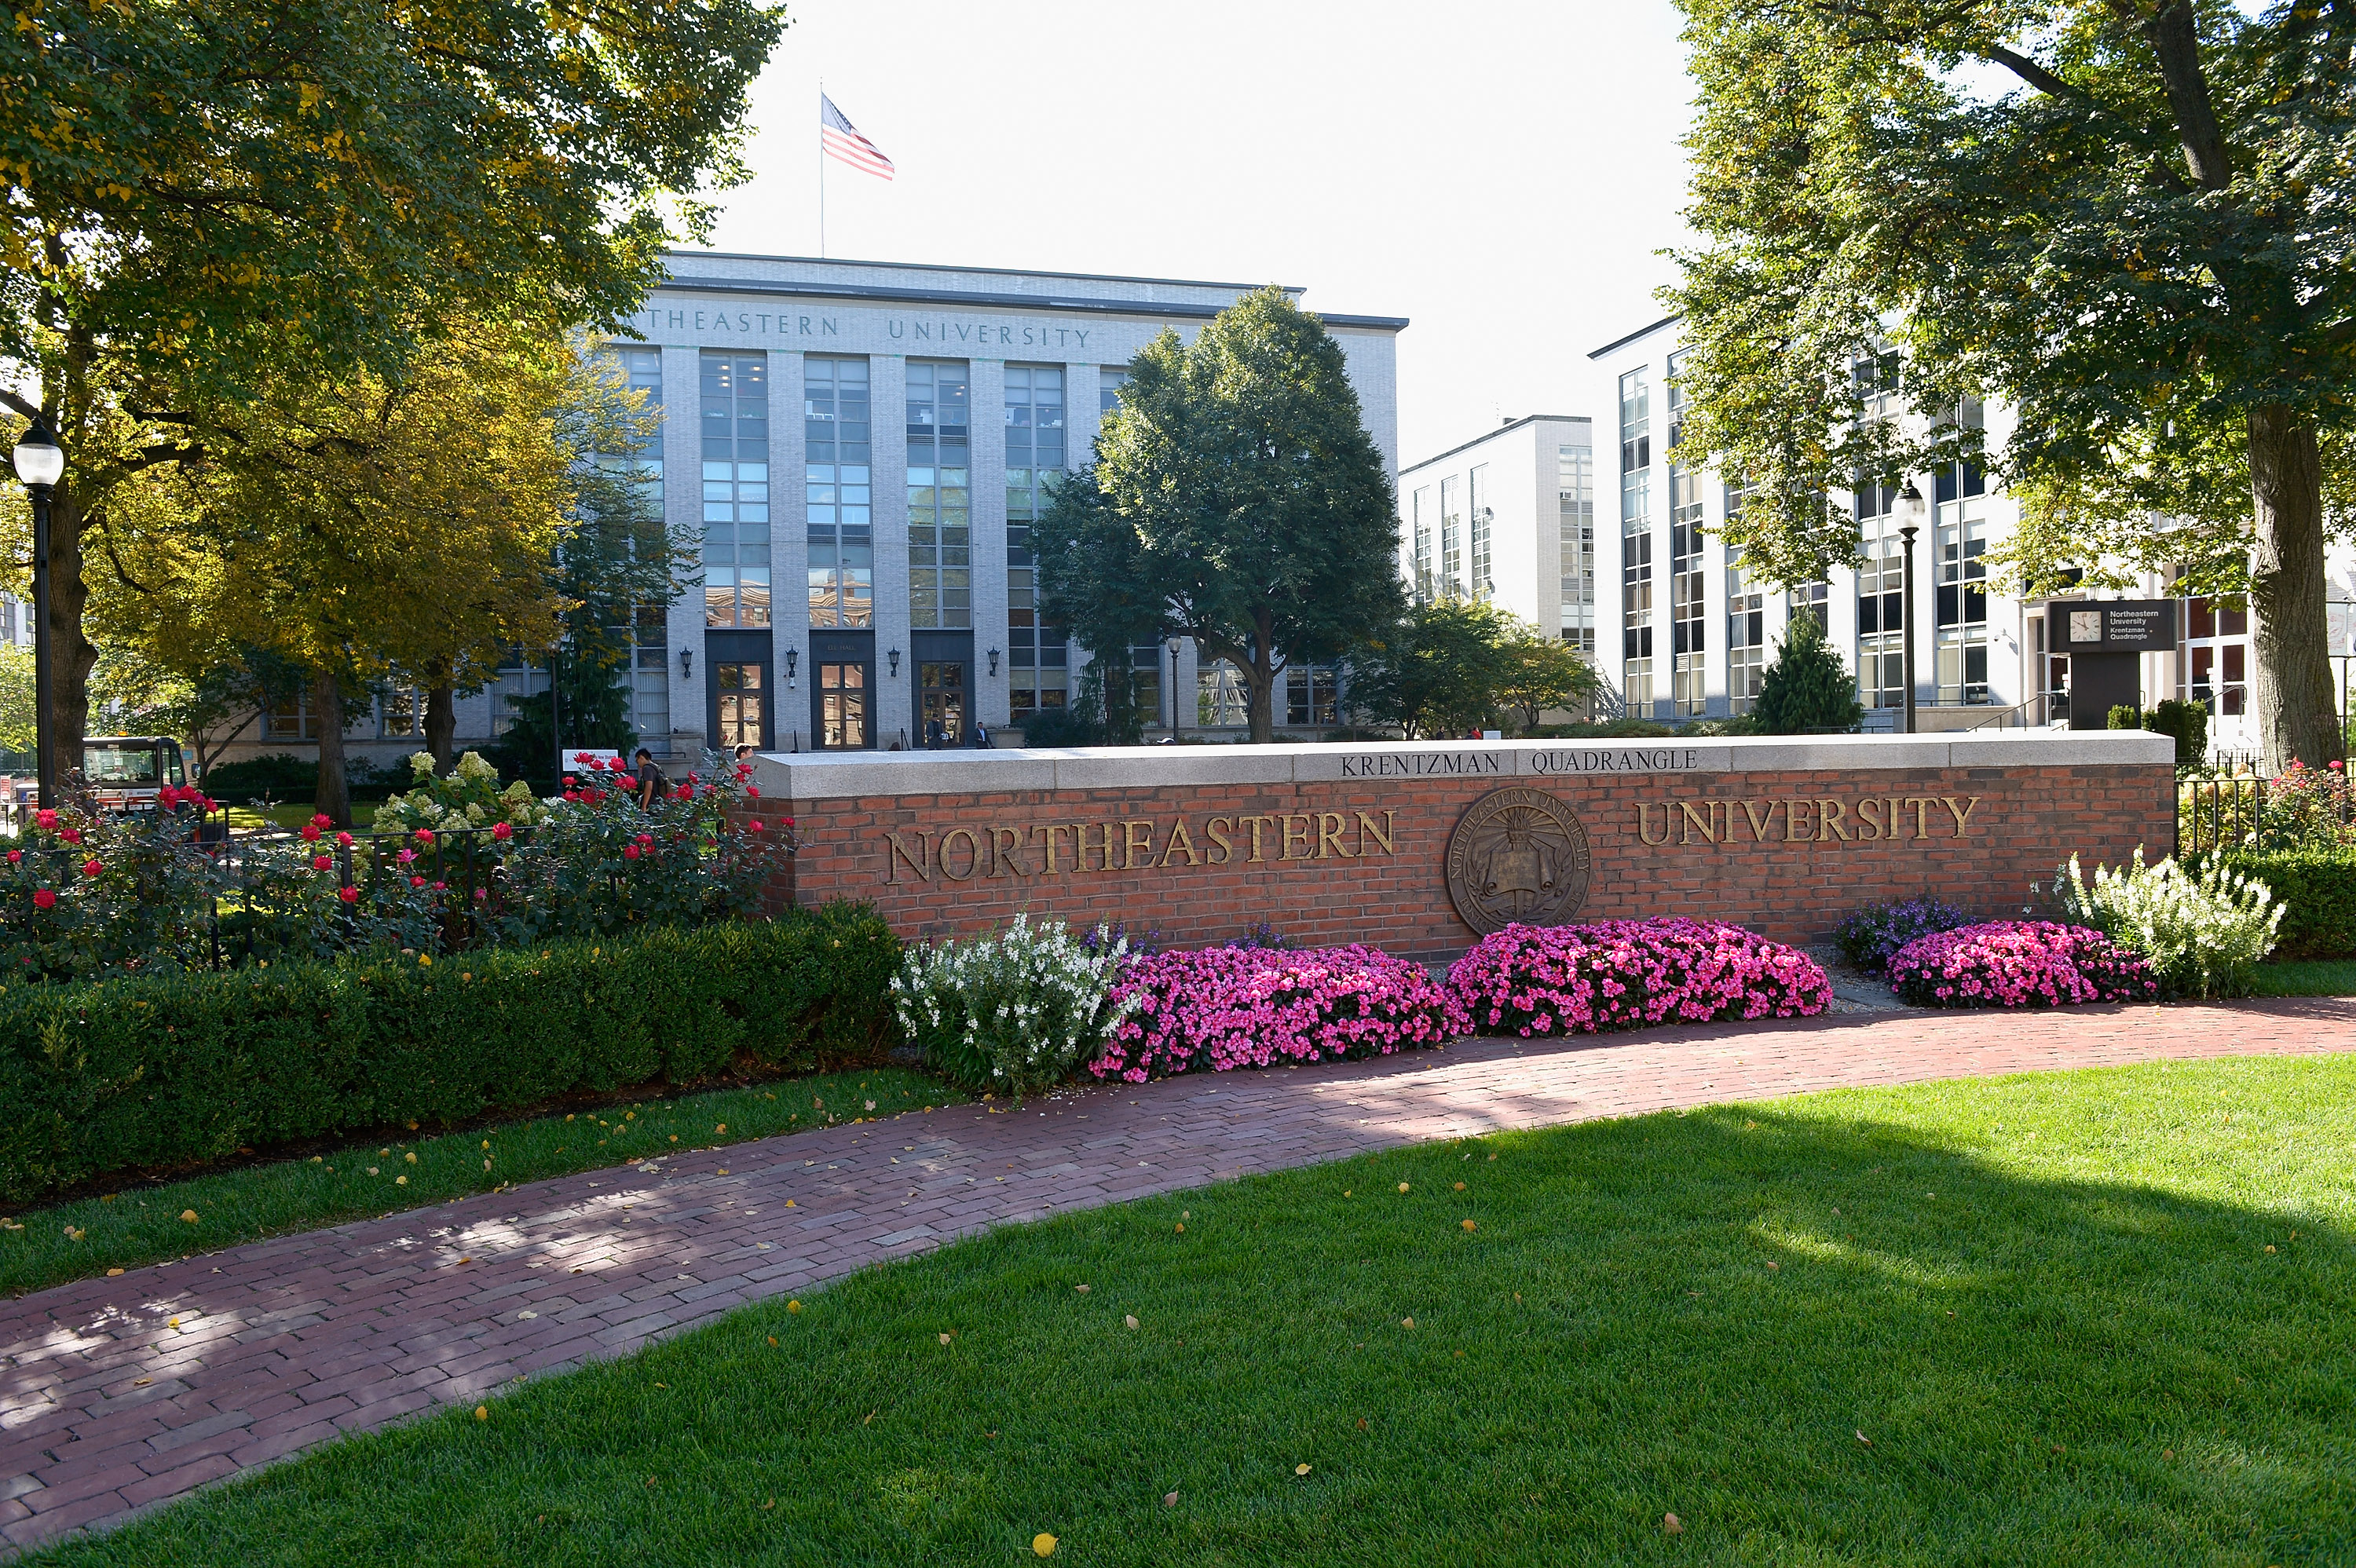 A general view of Northeastern University on September 30, 2014 in Boston, MA.